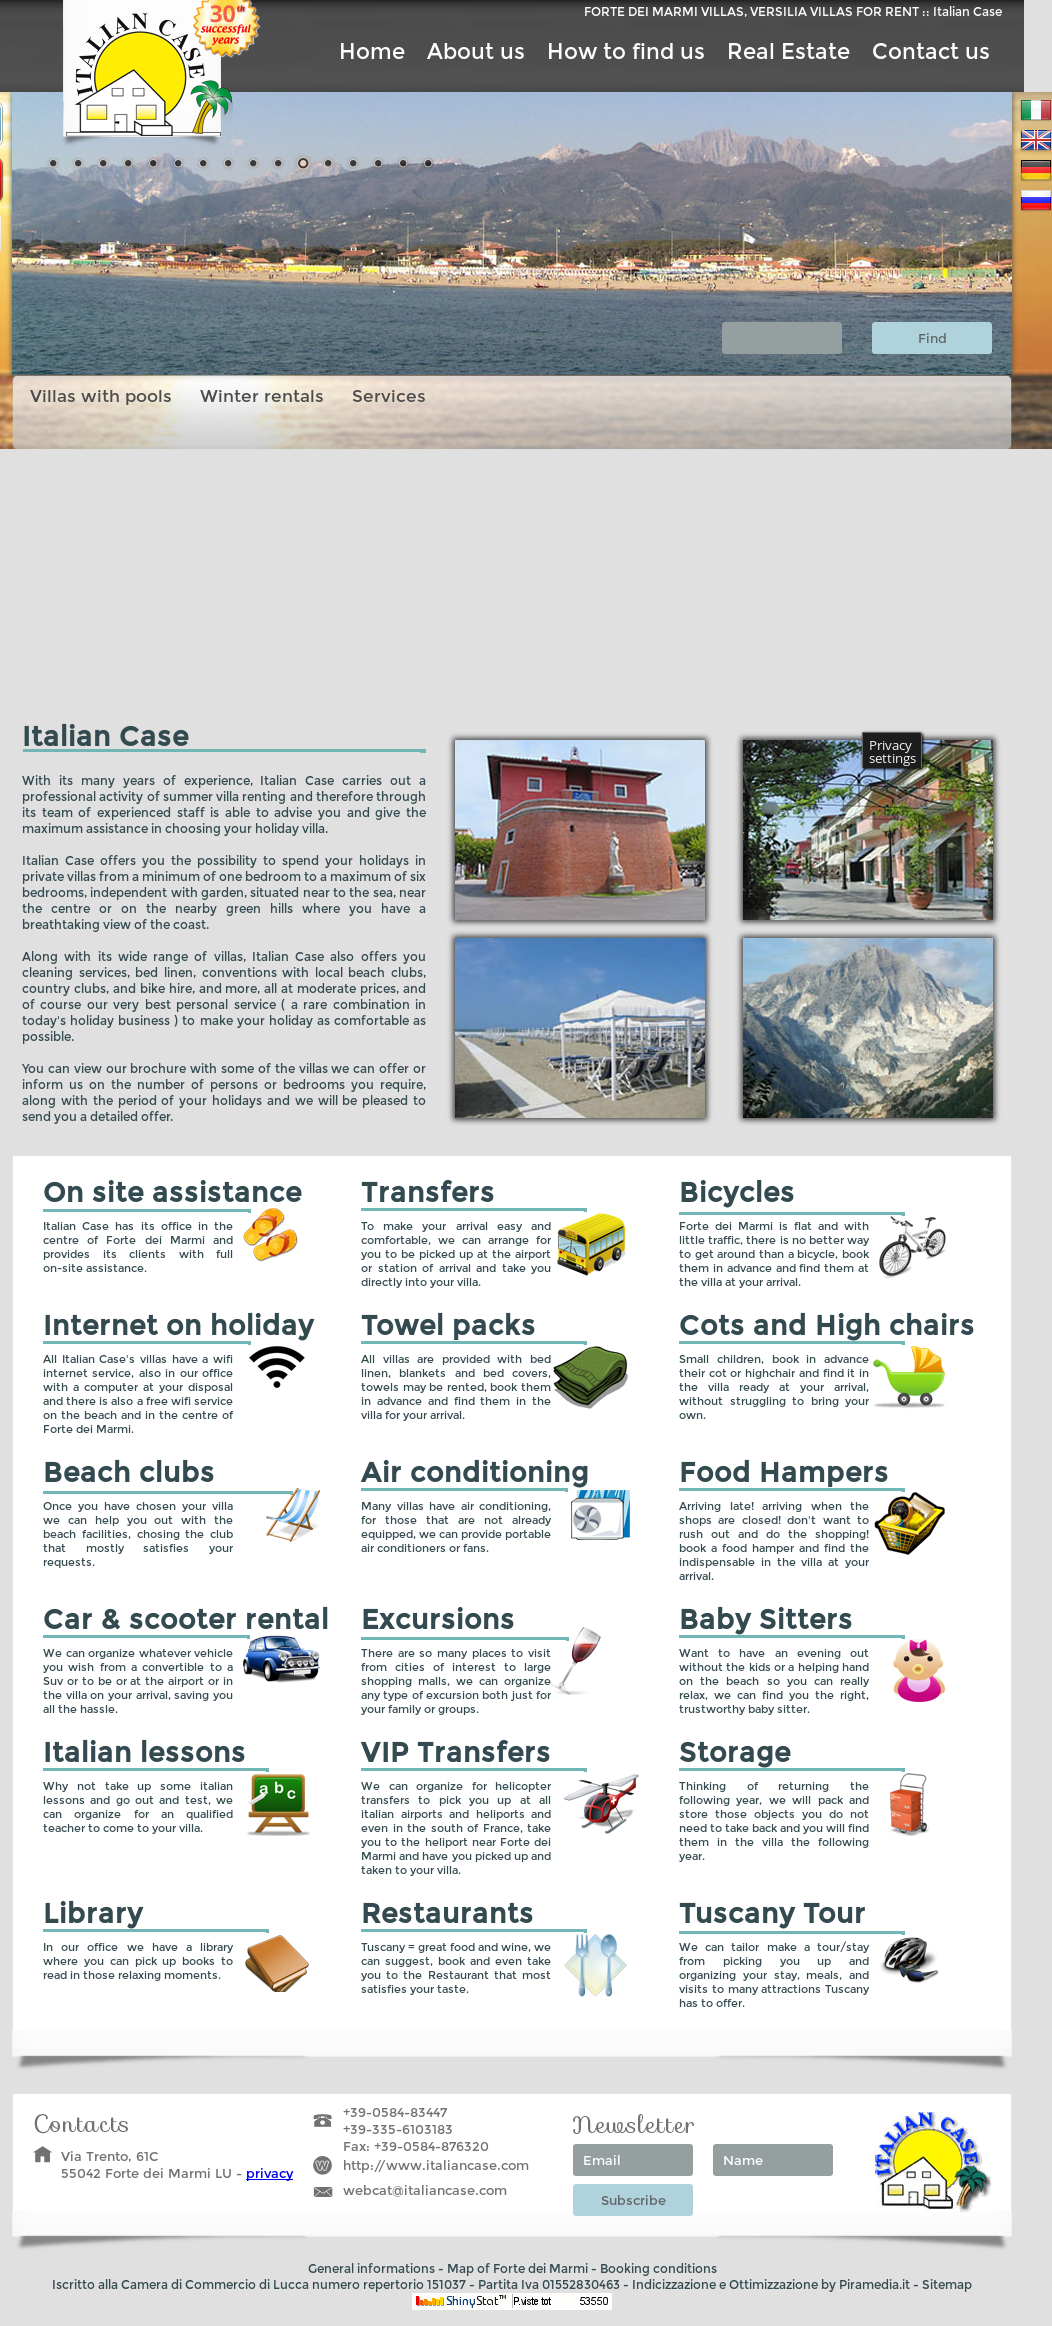 Italian Case Forte Dei Marmi italian case villa holidays competitors, revenue and